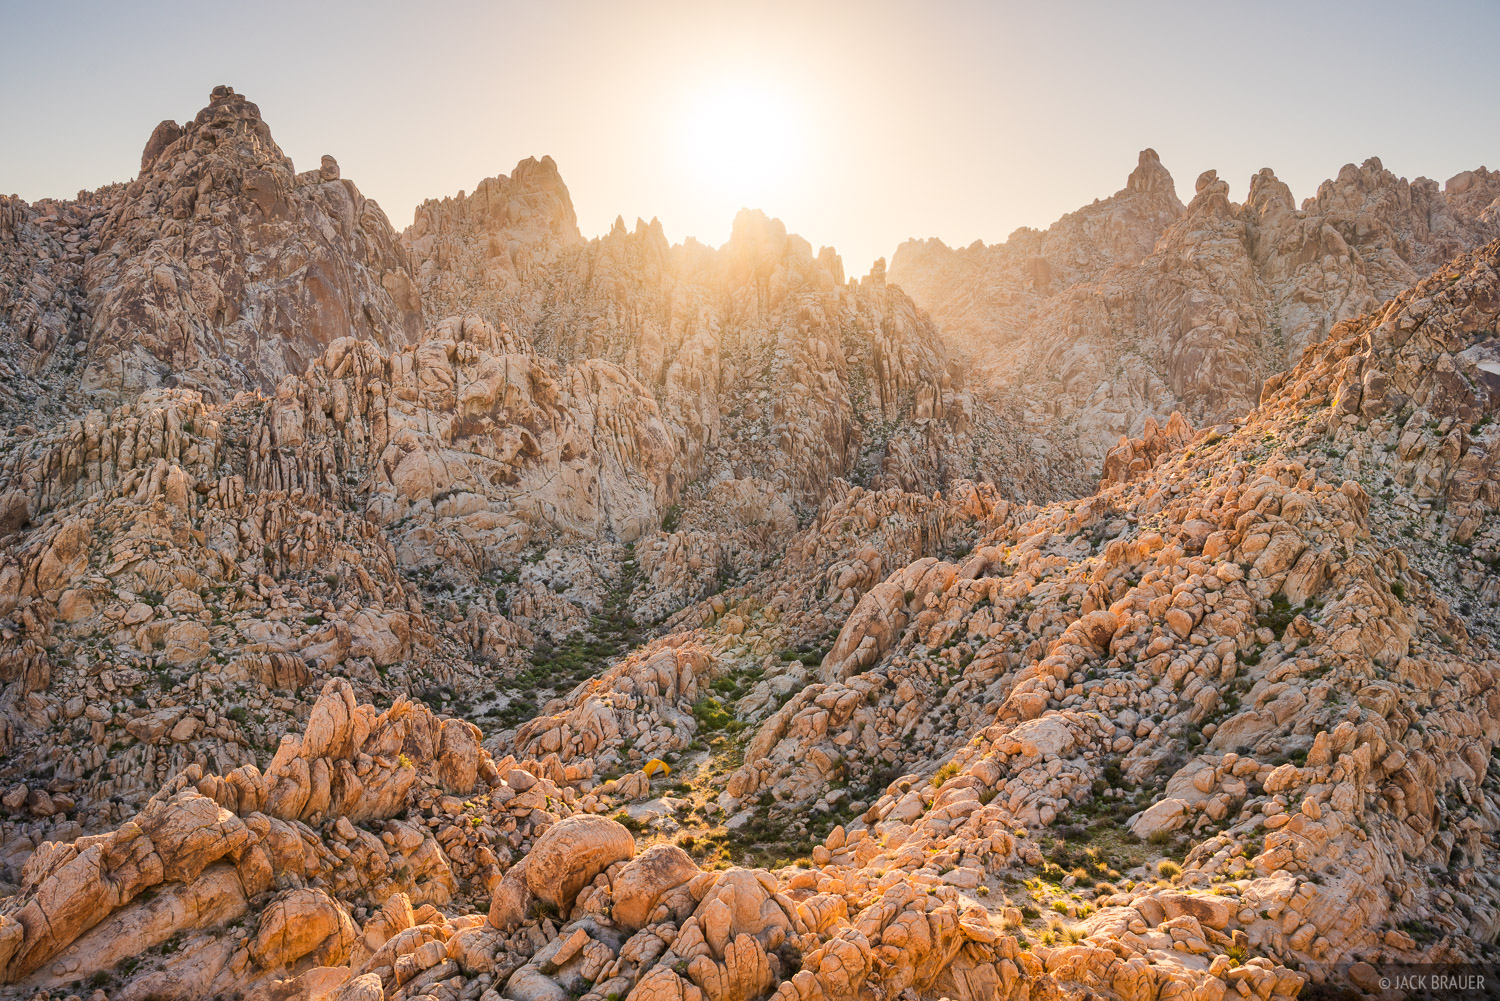 The sun sets over a super rugged bouldery basin high in the Coxcomb Mountains of Joshua Tree National Park, California.